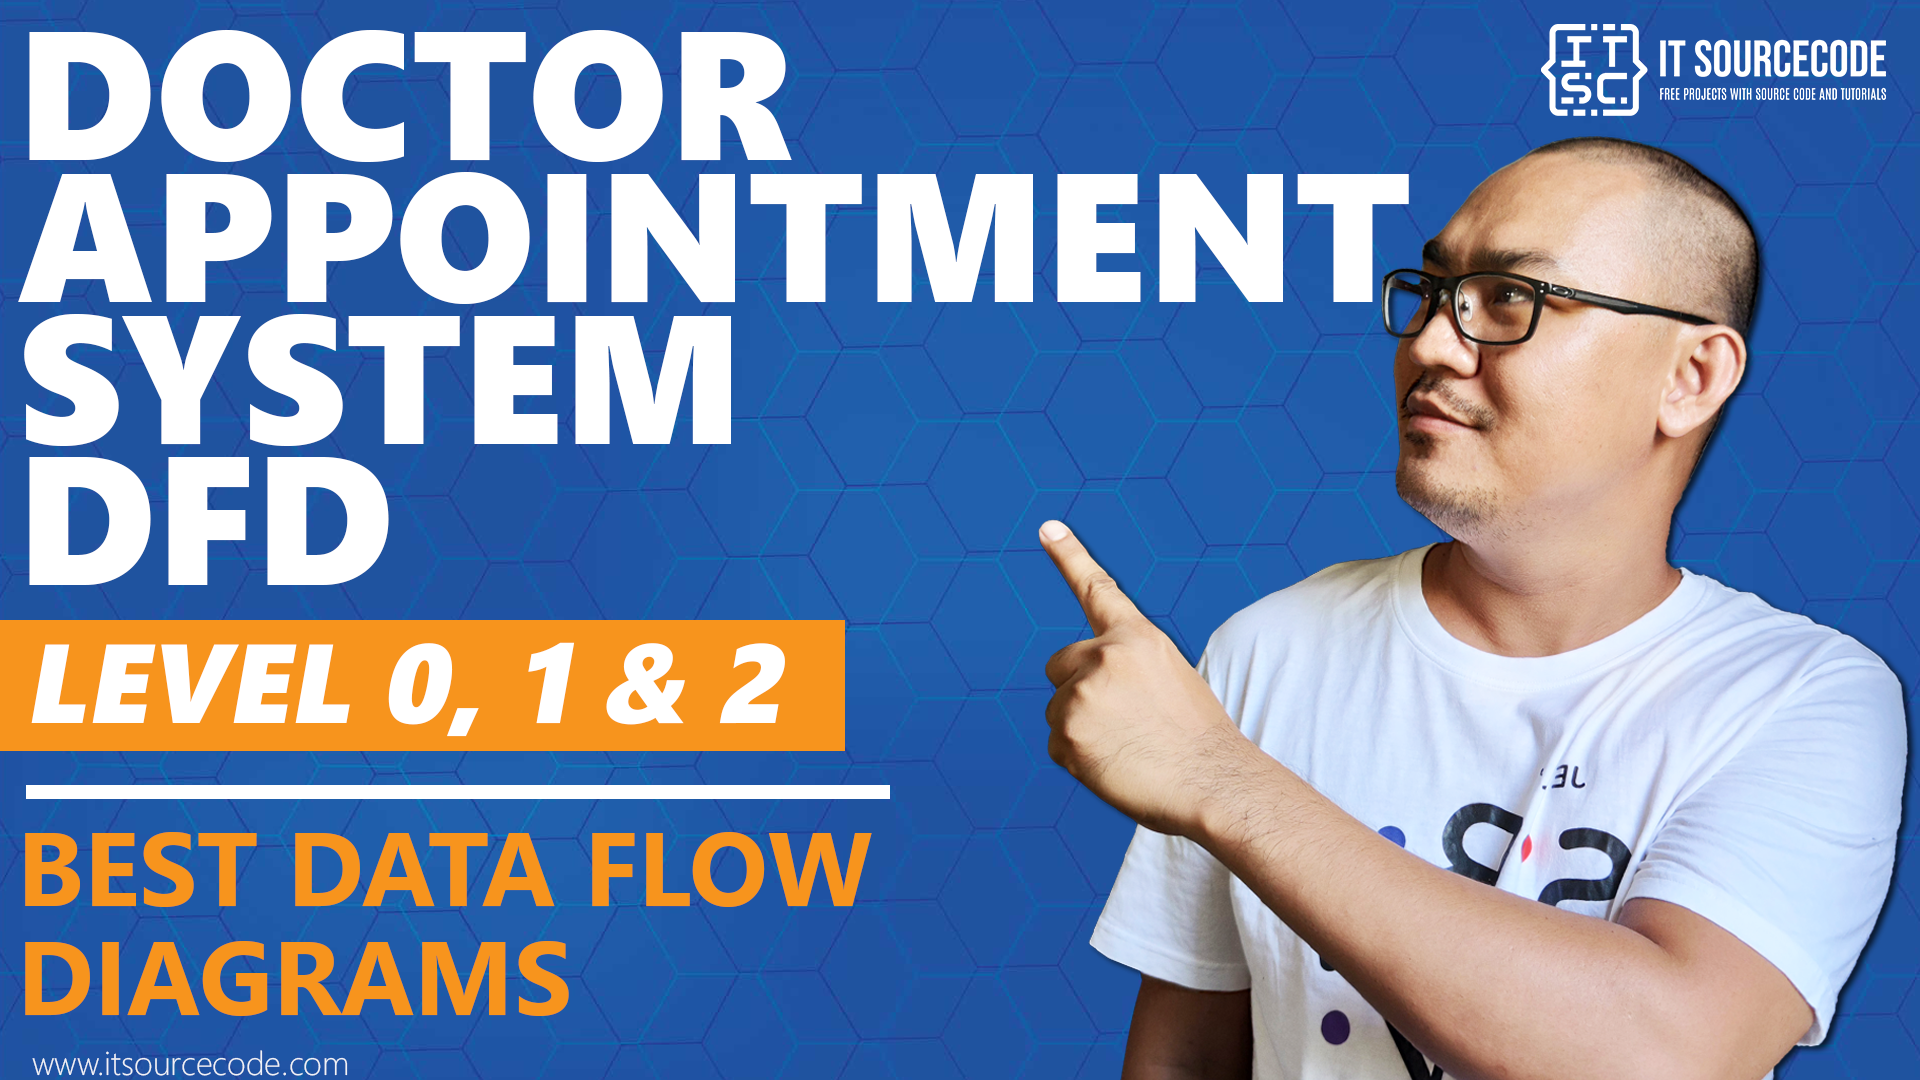 Best Data Flow Diagram - Doctor Appointment System DFD Level 0 1 2 - 2021